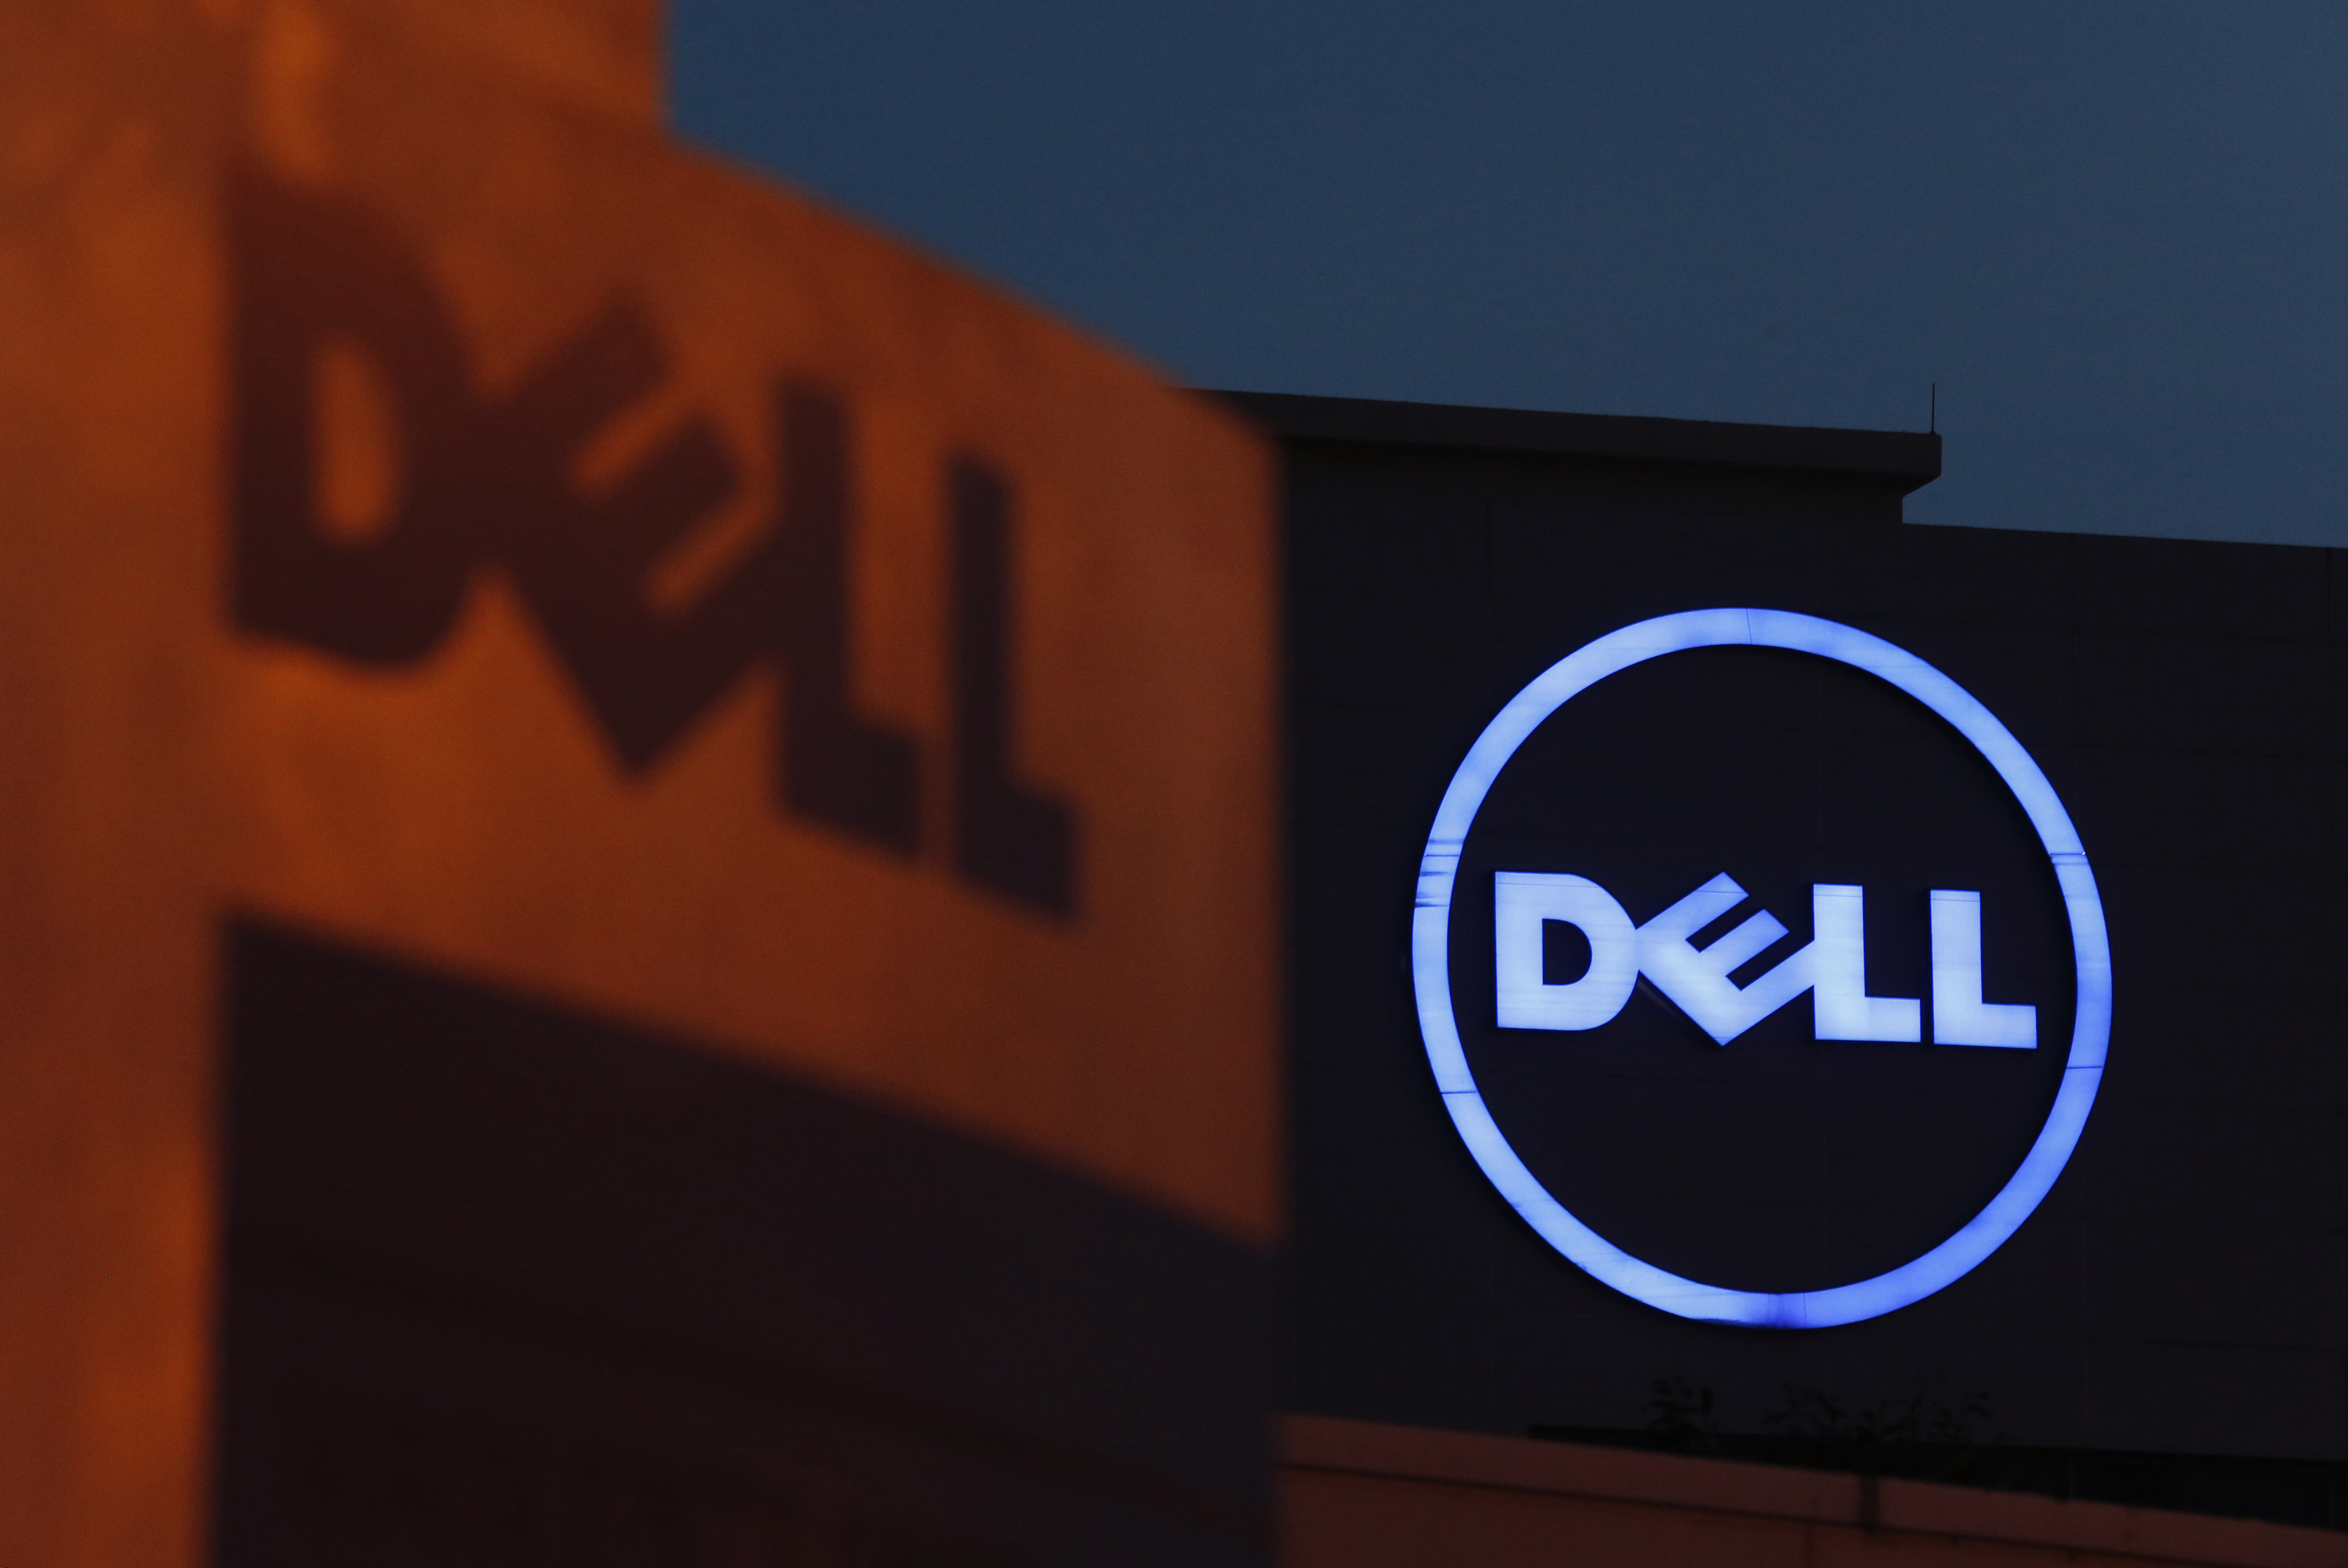 Dell logos are seen at its Cyberjaya headquarters utside Kuala Lumpur, Malaysia, Sept. 4, 2013. The company has issued a fix after a self-signed certificate that shipped with some of its computers put users at risk.